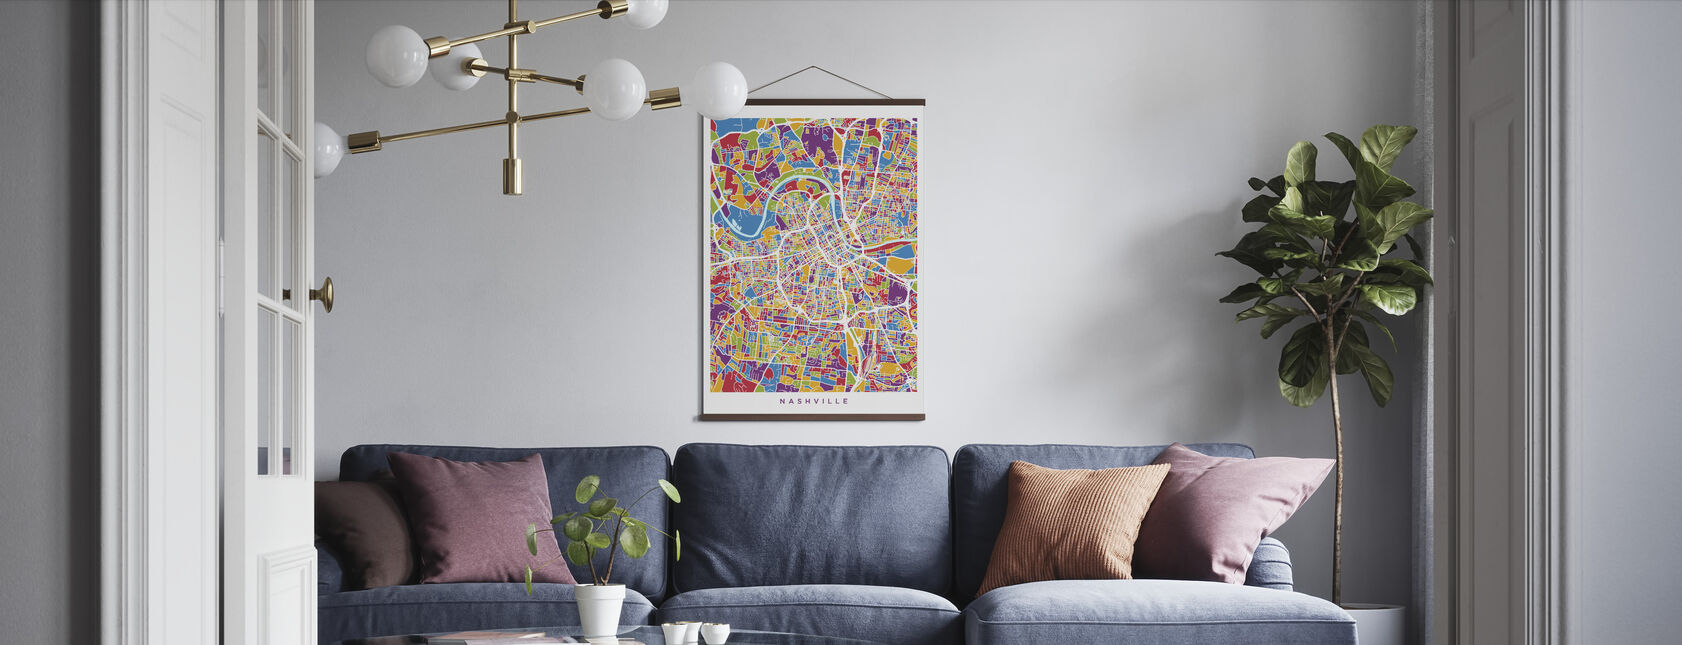 Nashville Tennessee City Map - Poster - Living Room